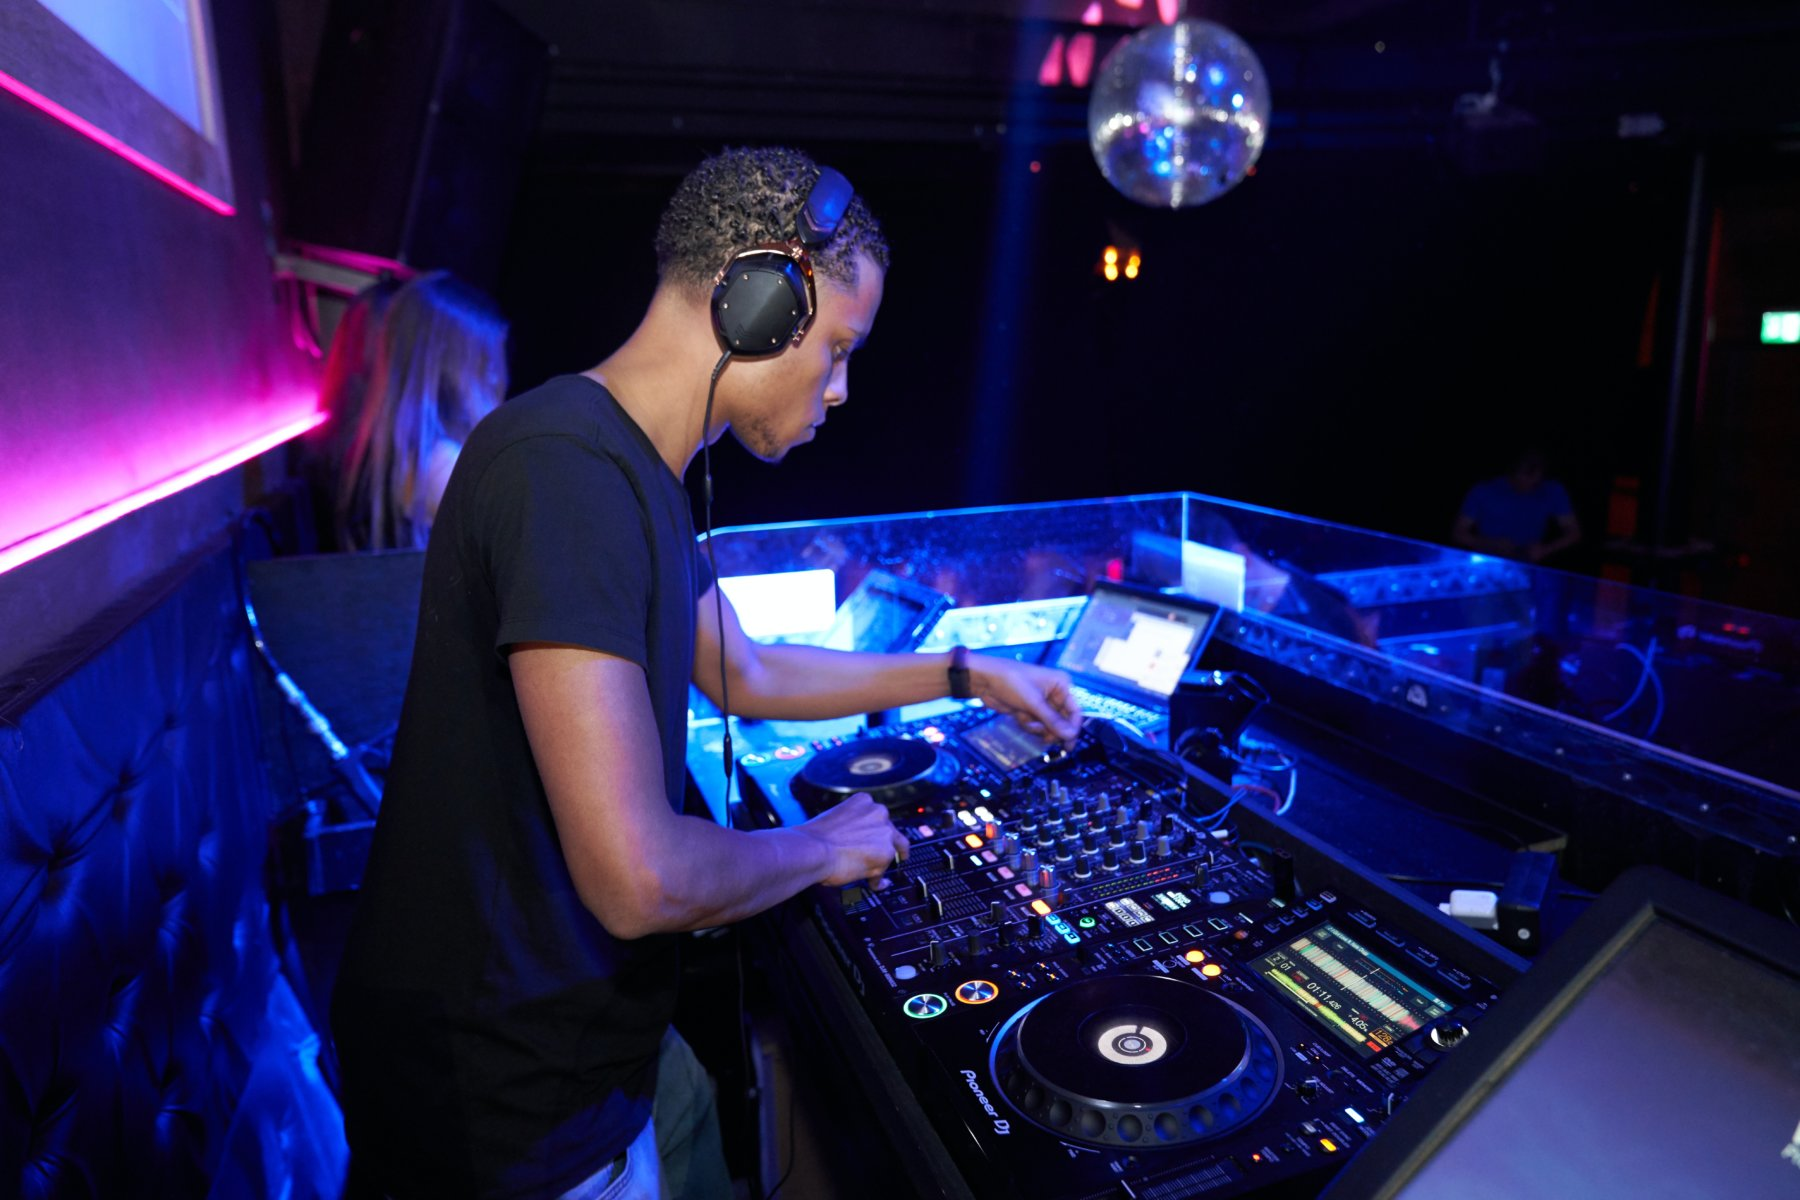 A DJ At An Electronic Music Gig